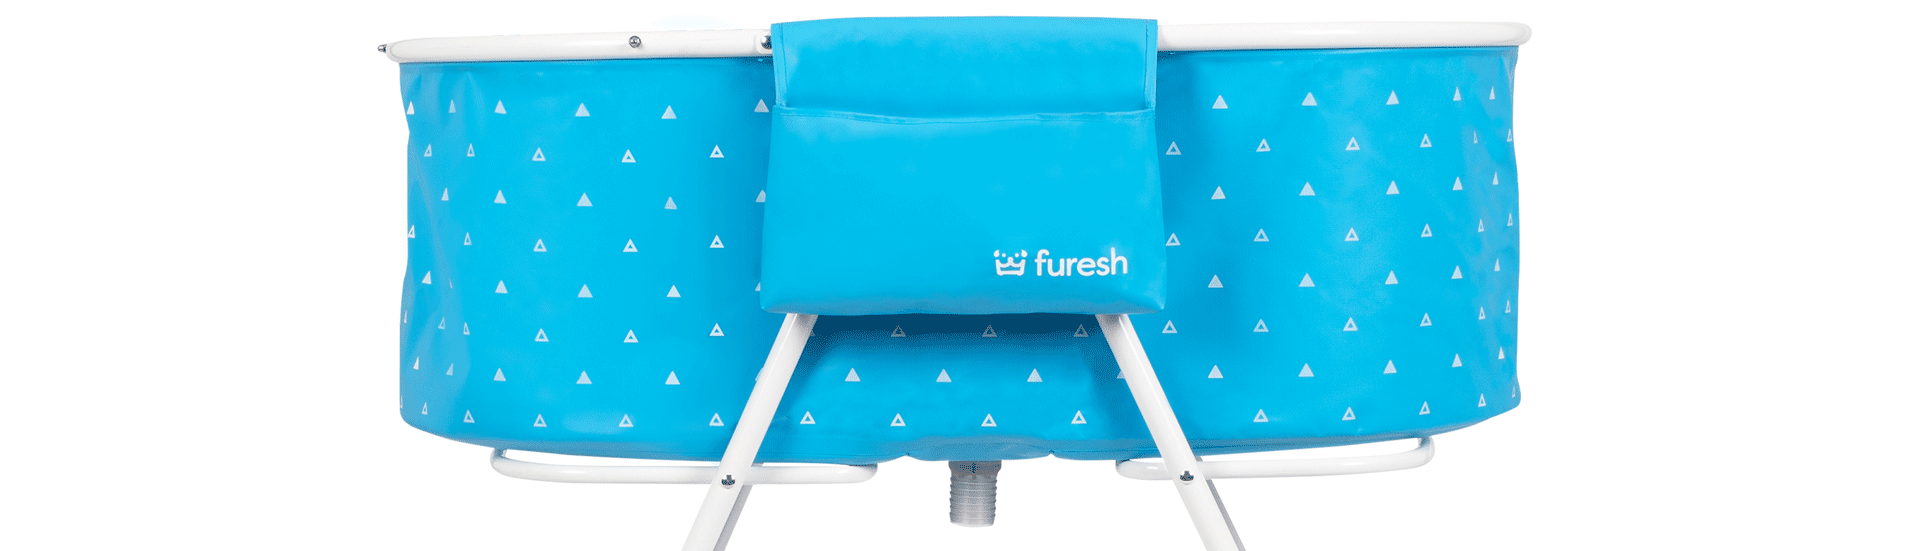 Blue Furesh portable and folding grooming tub